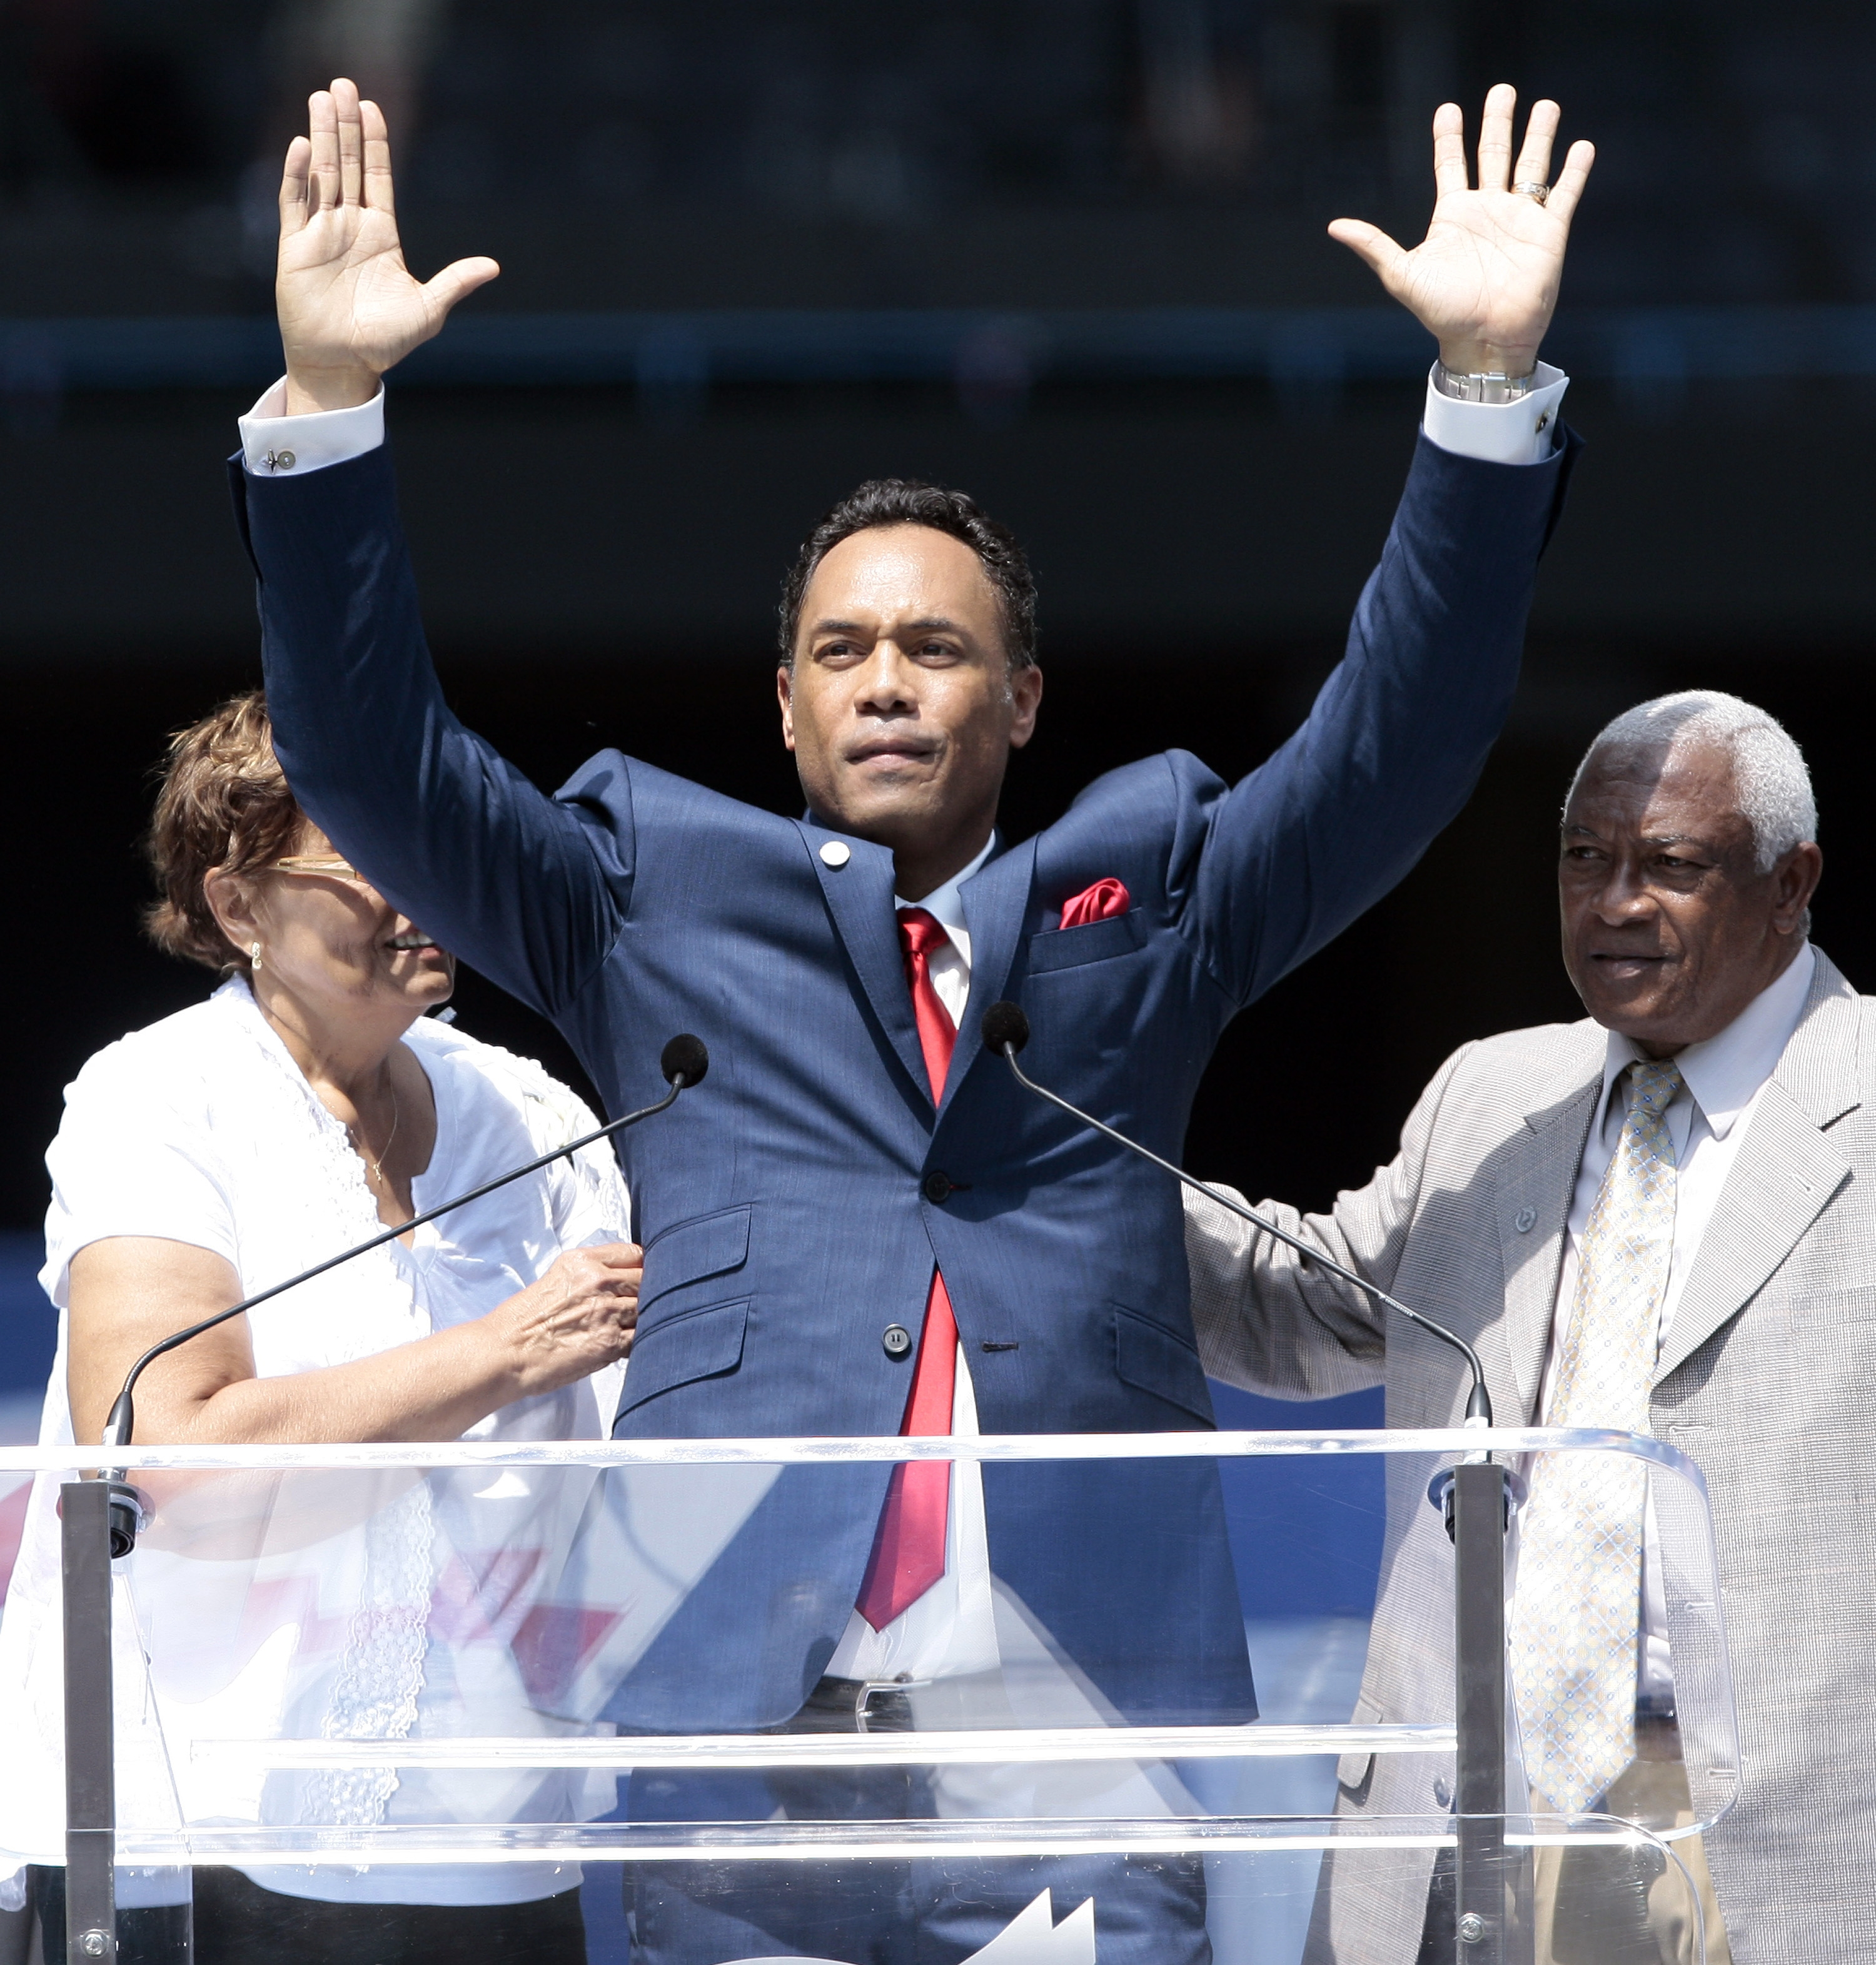 Hall of Famer Roberto Alomar waves to the fans during a ceremony to retire his No. 12 12 jersey at the Rogers Centre on July 31, 2011. (Getty Images)